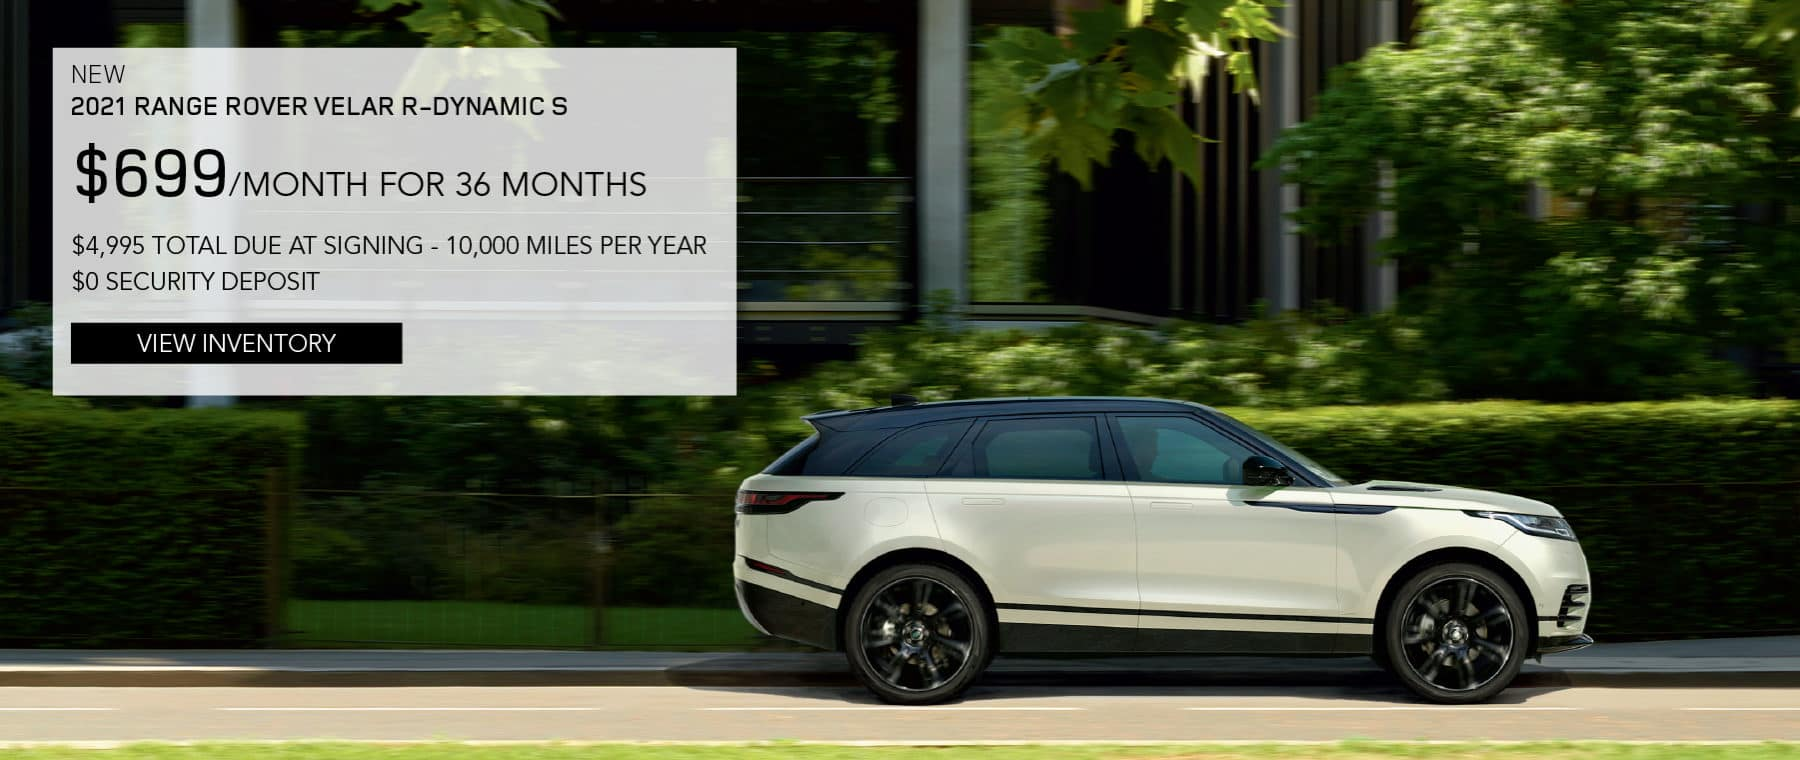 NEW 2021 RANGE ROVER VELAR R-DYNAMIC S. $699 PER MONTH. 36 MONTH LEASE TERM. $4,995 CASH DUE AT SIGNING. $0 SECURITY DEPOSIT. 10,000 MILES PER YEAR. EXCLUDES RETAILER FEES, TAXES, TITLE AND REGISTRATION FEES, PROCESSING FEE AND ANY EMISSION TESTING CHARGE. ENDS 8/2/2021. VIEW INVENTORY. SILVER RANGE ROVER VELAR PARKED IN CITY.